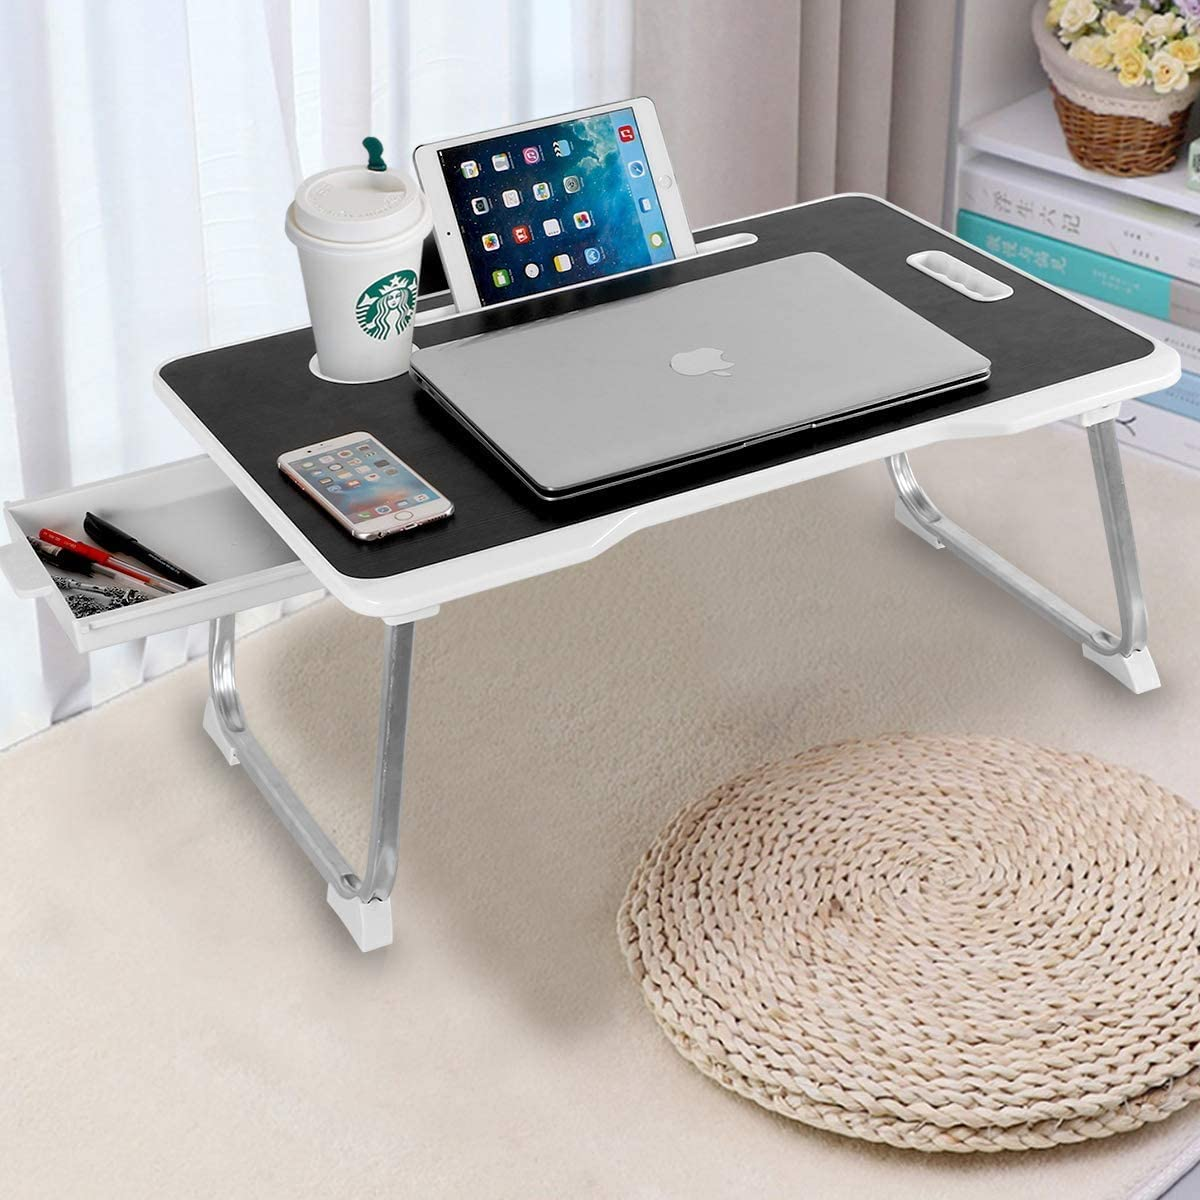 Laptop Desk with Drawer, Aitmexcn Portable Laptop Bed Tray Table Notebook Stand Reading Holder Built in Convenient Handle & Cup Slot & Foldable Legs for Bed/Sofa/Couch/Floor (Black & White)